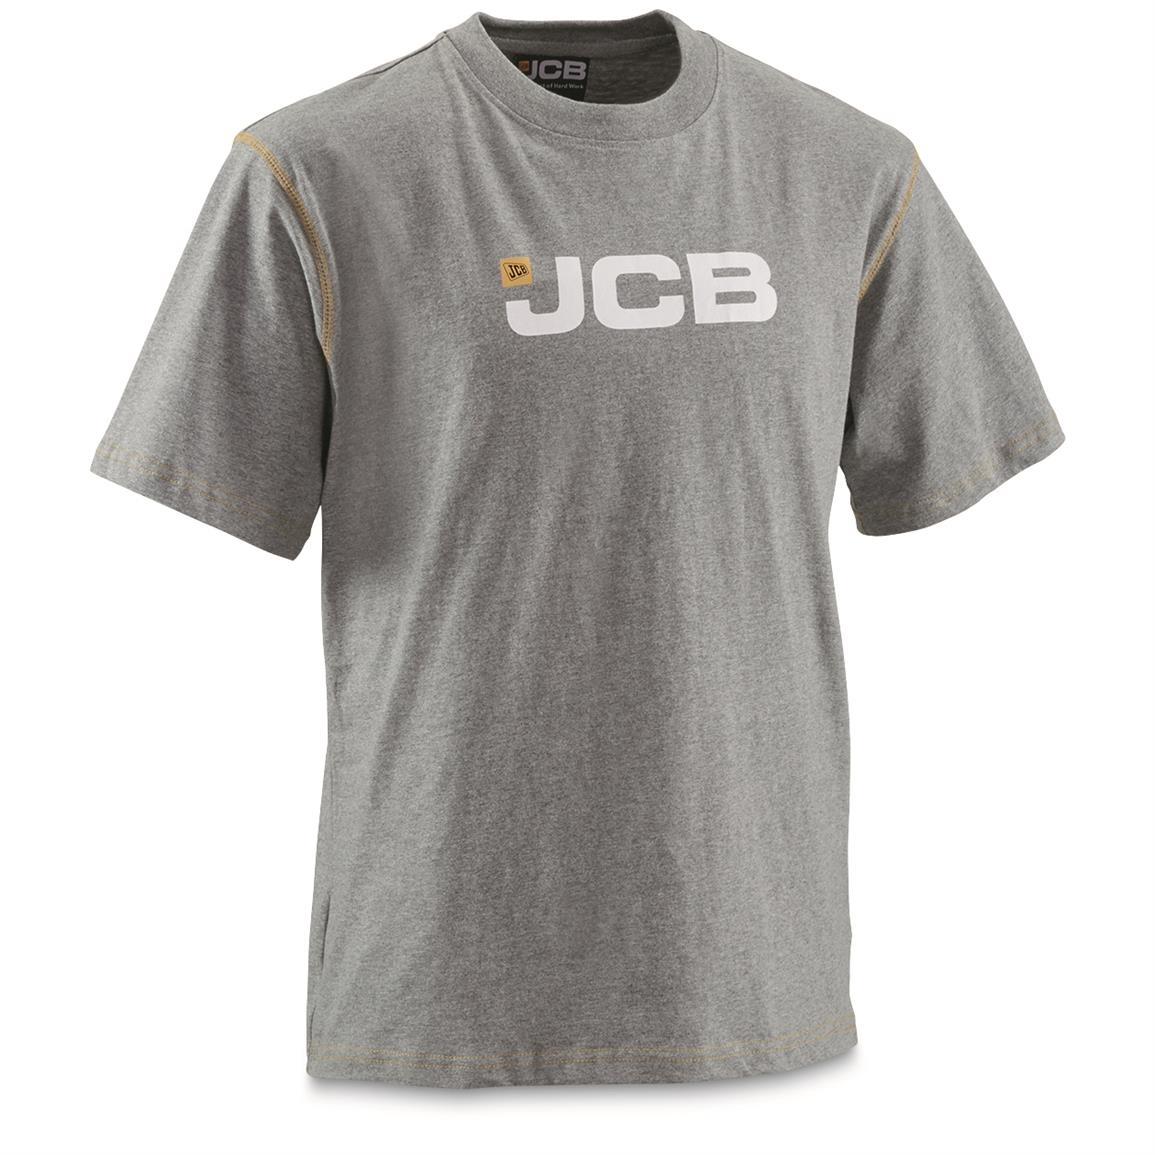 JCB Military Contractor Workwear T-Shirt, New, Gray